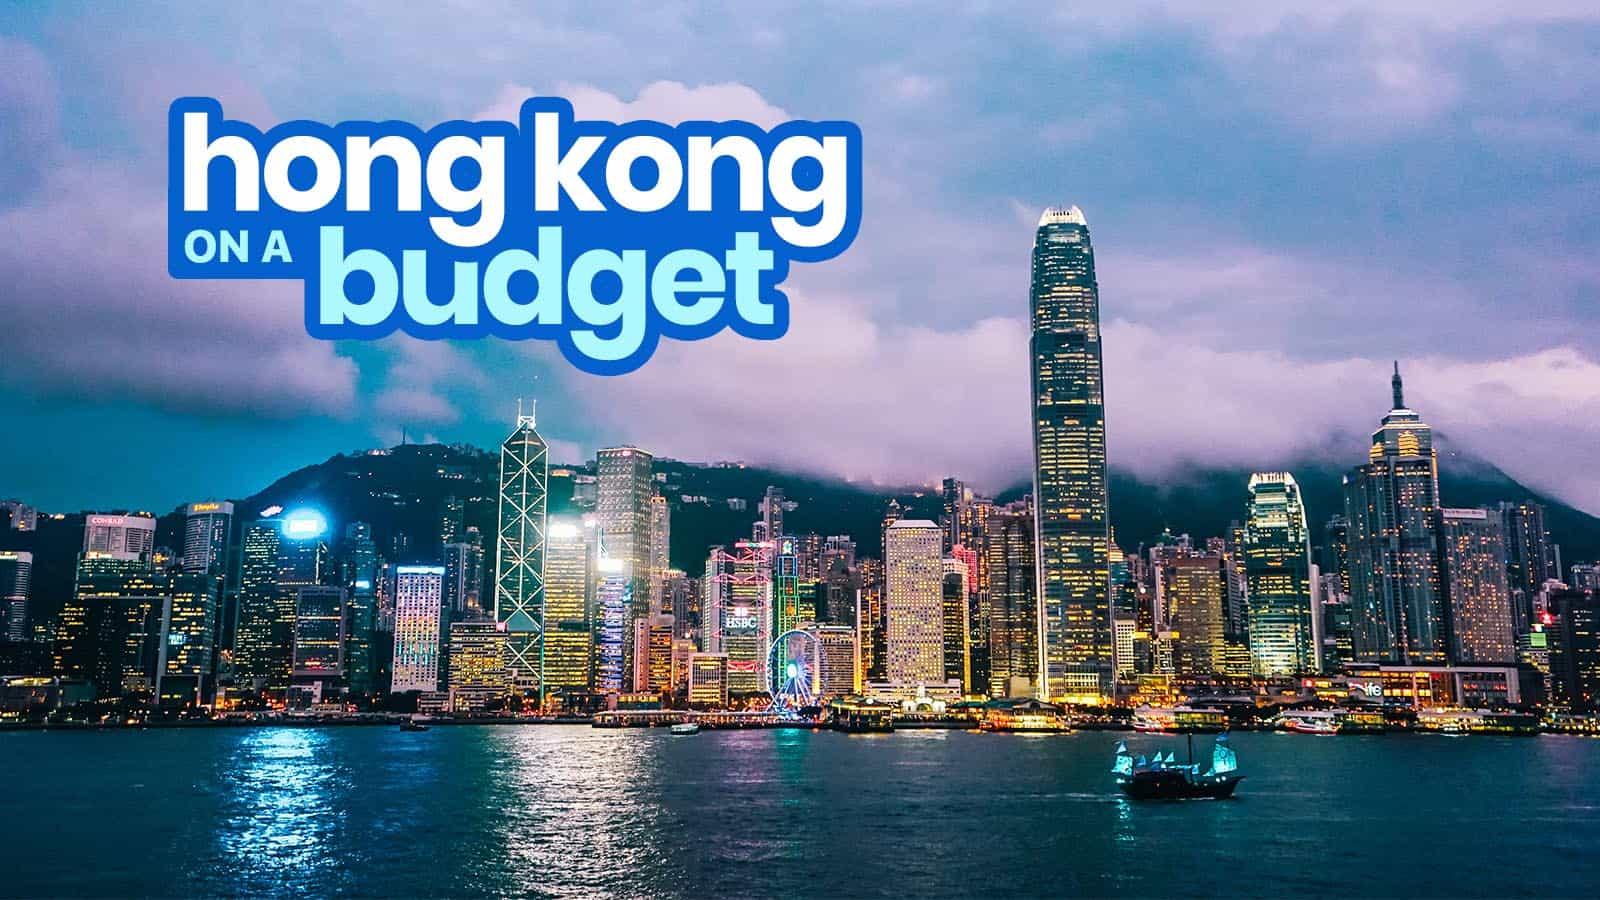 2019 HONG KONG TRAVEL GUIDE with Budget Itinerary | The Poor